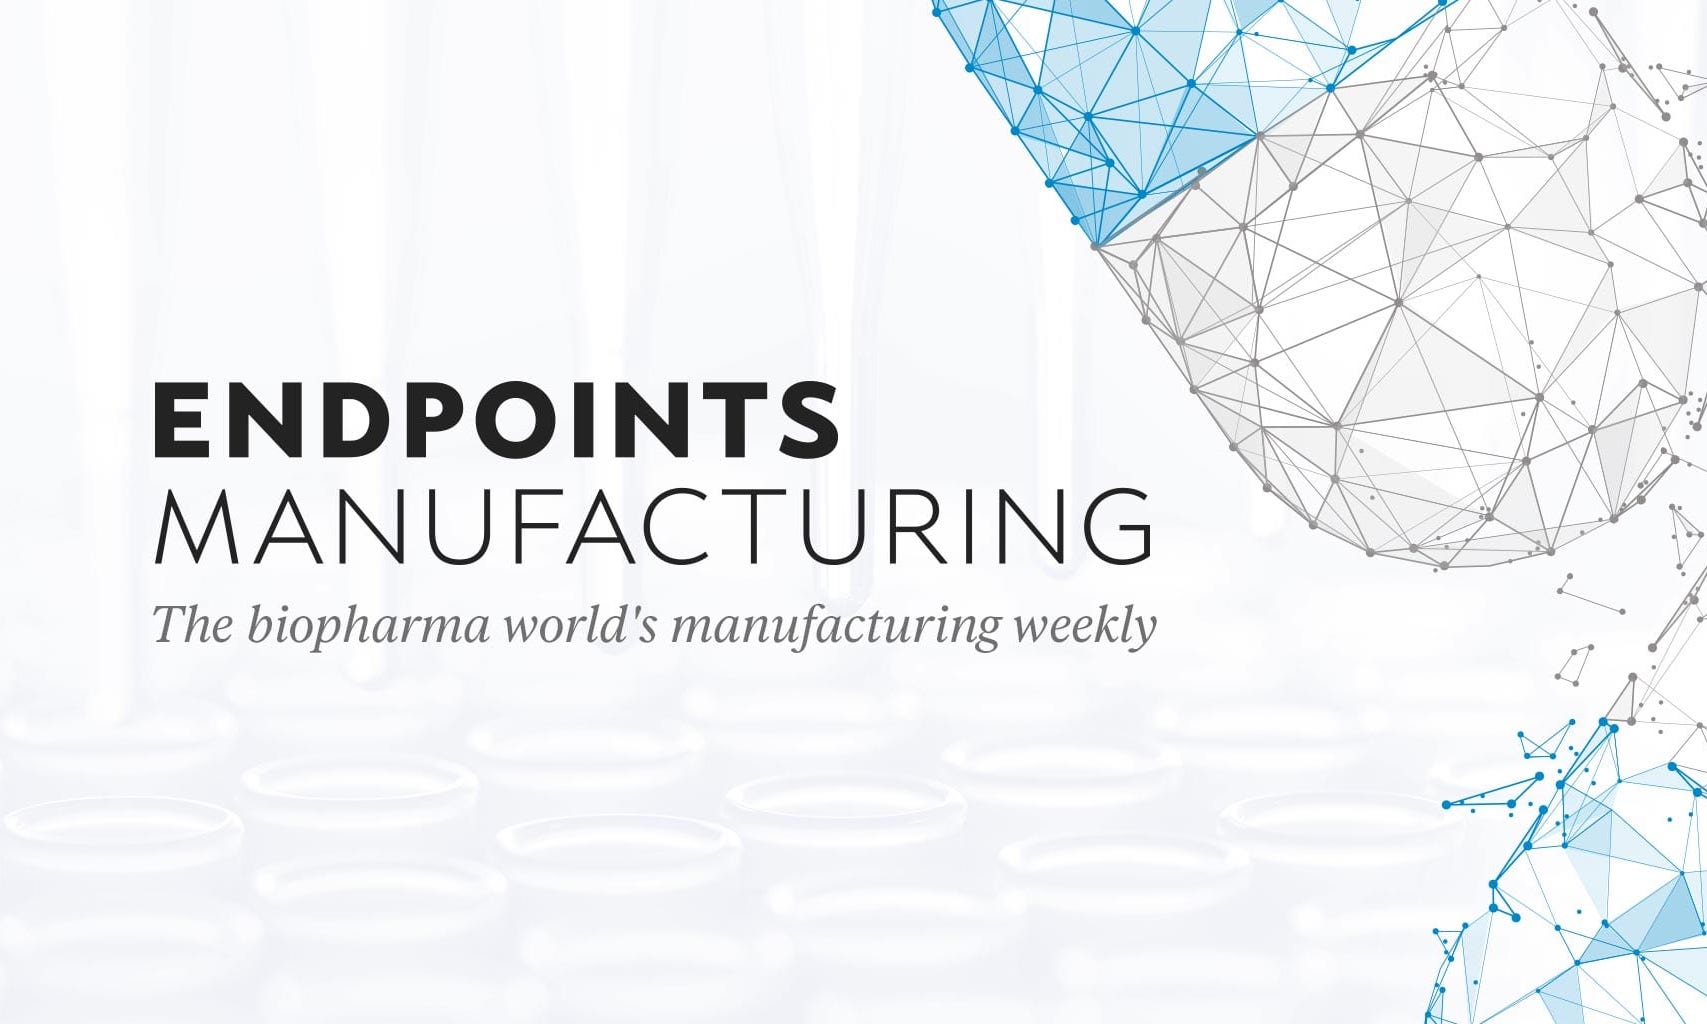 Endpoints Manufacturing: Touchlight's 'doggyboneDNA' looks to rewrite rules of therapeutic DNA